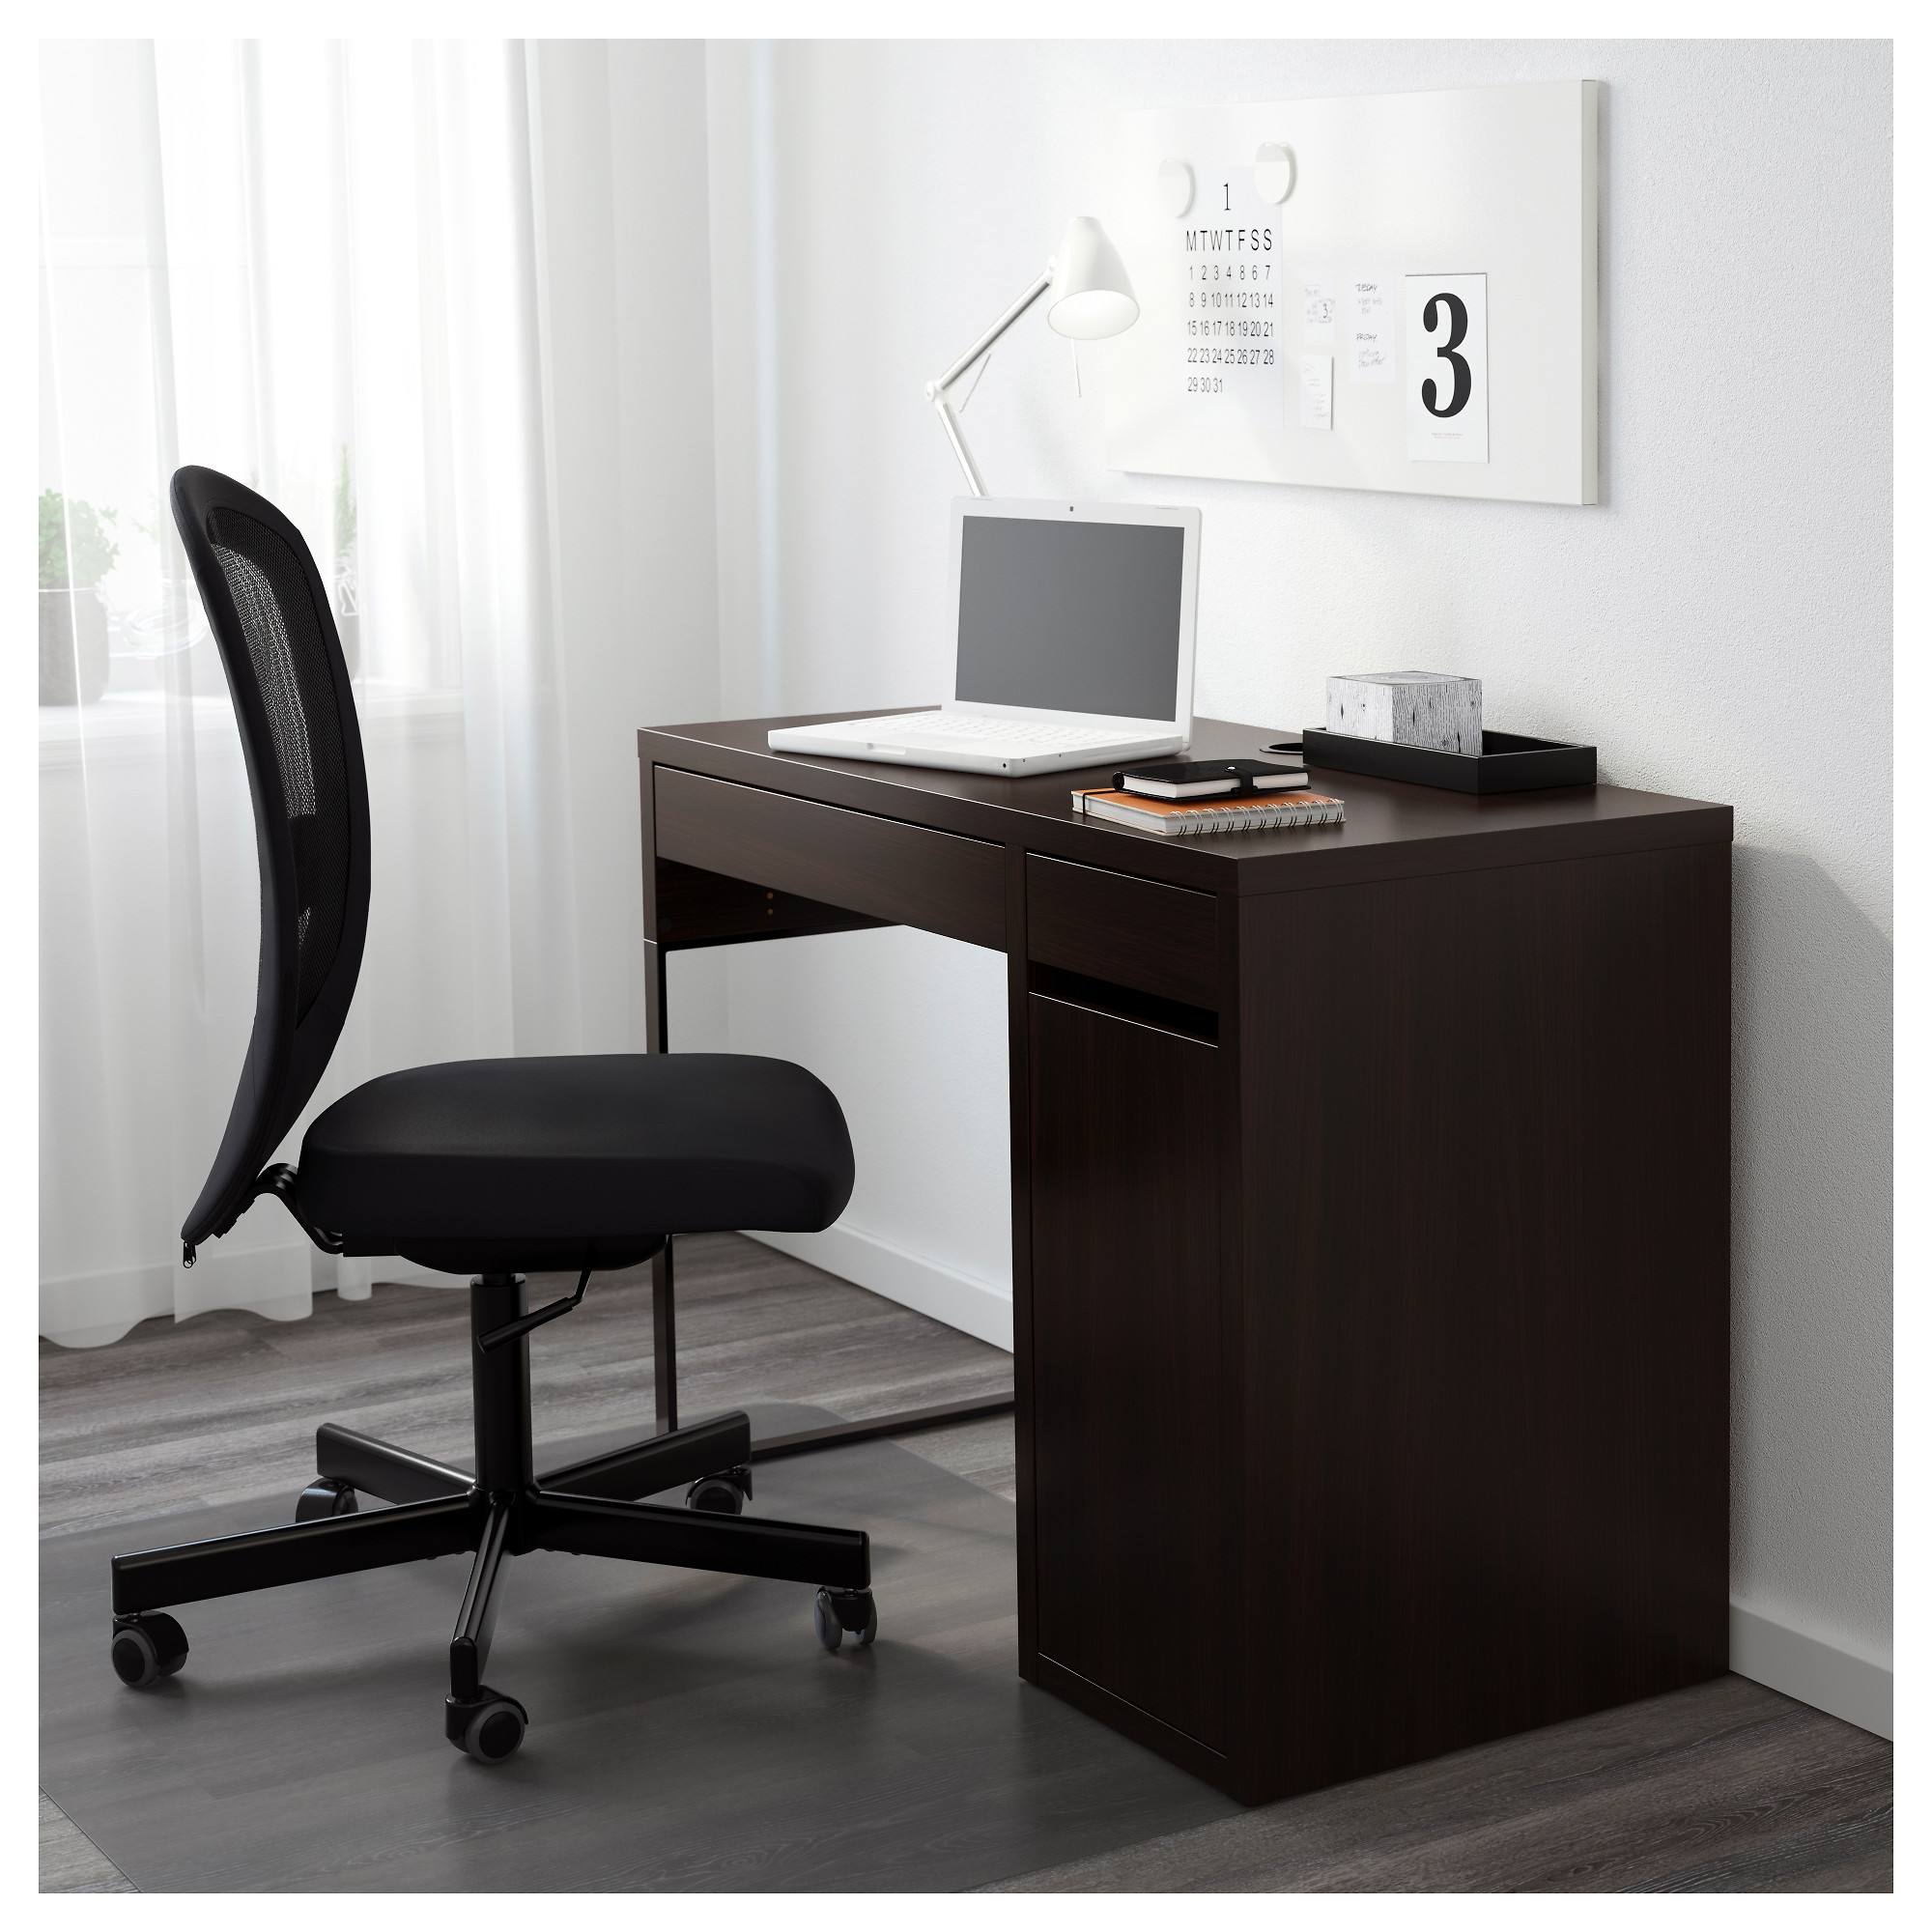 Computer table models with prices - Computer Table Models With Prices 25